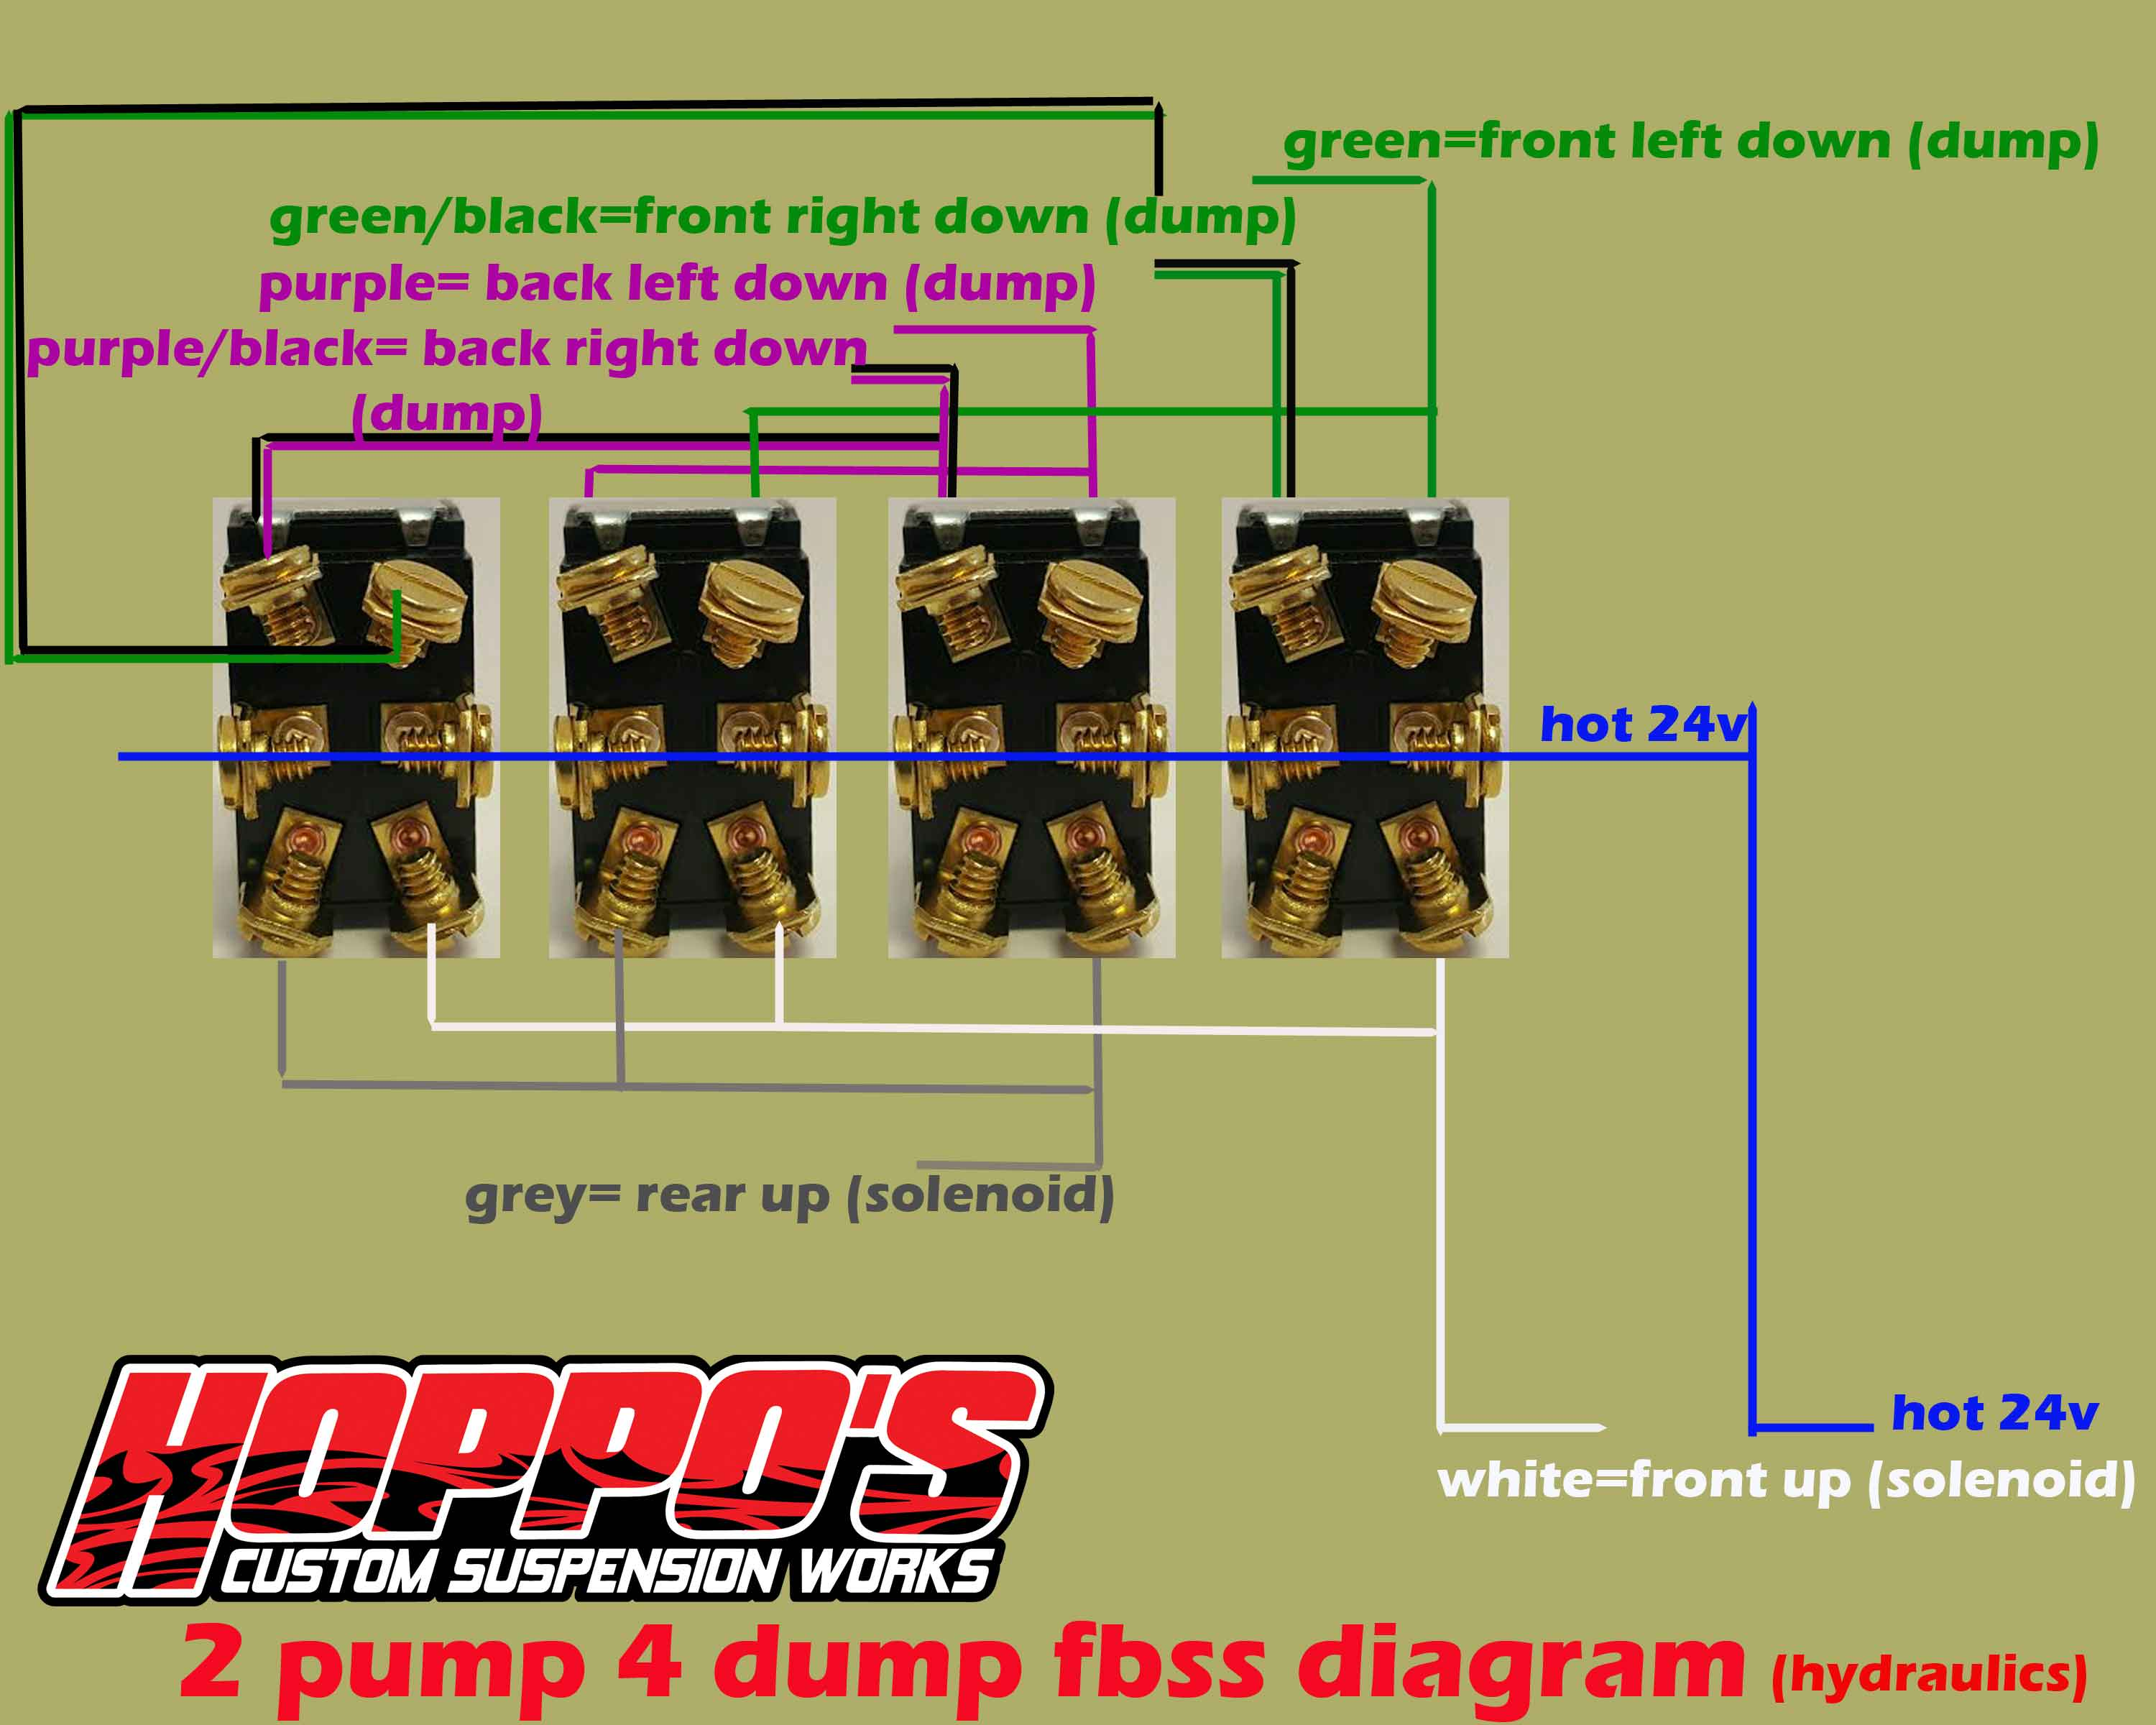 Hydraulic Tech on hydraulic pump suspension, hydraulic pump relay, hydraulic pump flow diagram, hydraulic pump brochure, hydraulic pump maintenance, hydraulic pump circuit diagram, hydraulic pump plumbing diagram, hydraulic pump power steering, hydraulic gear pump diagram, hydraulic pump adjustments, hydraulic pump engine, hydraulic motors and pumps, hydraulic pump cover, hydraulic pump operation diagram, hydraulic pump bmw, hydraulic pump bracket diagram, hydraulic pump operation manual, hydraulic pump tools, hydraulic pump user manual, 2 stage hydraulic pump diagram,